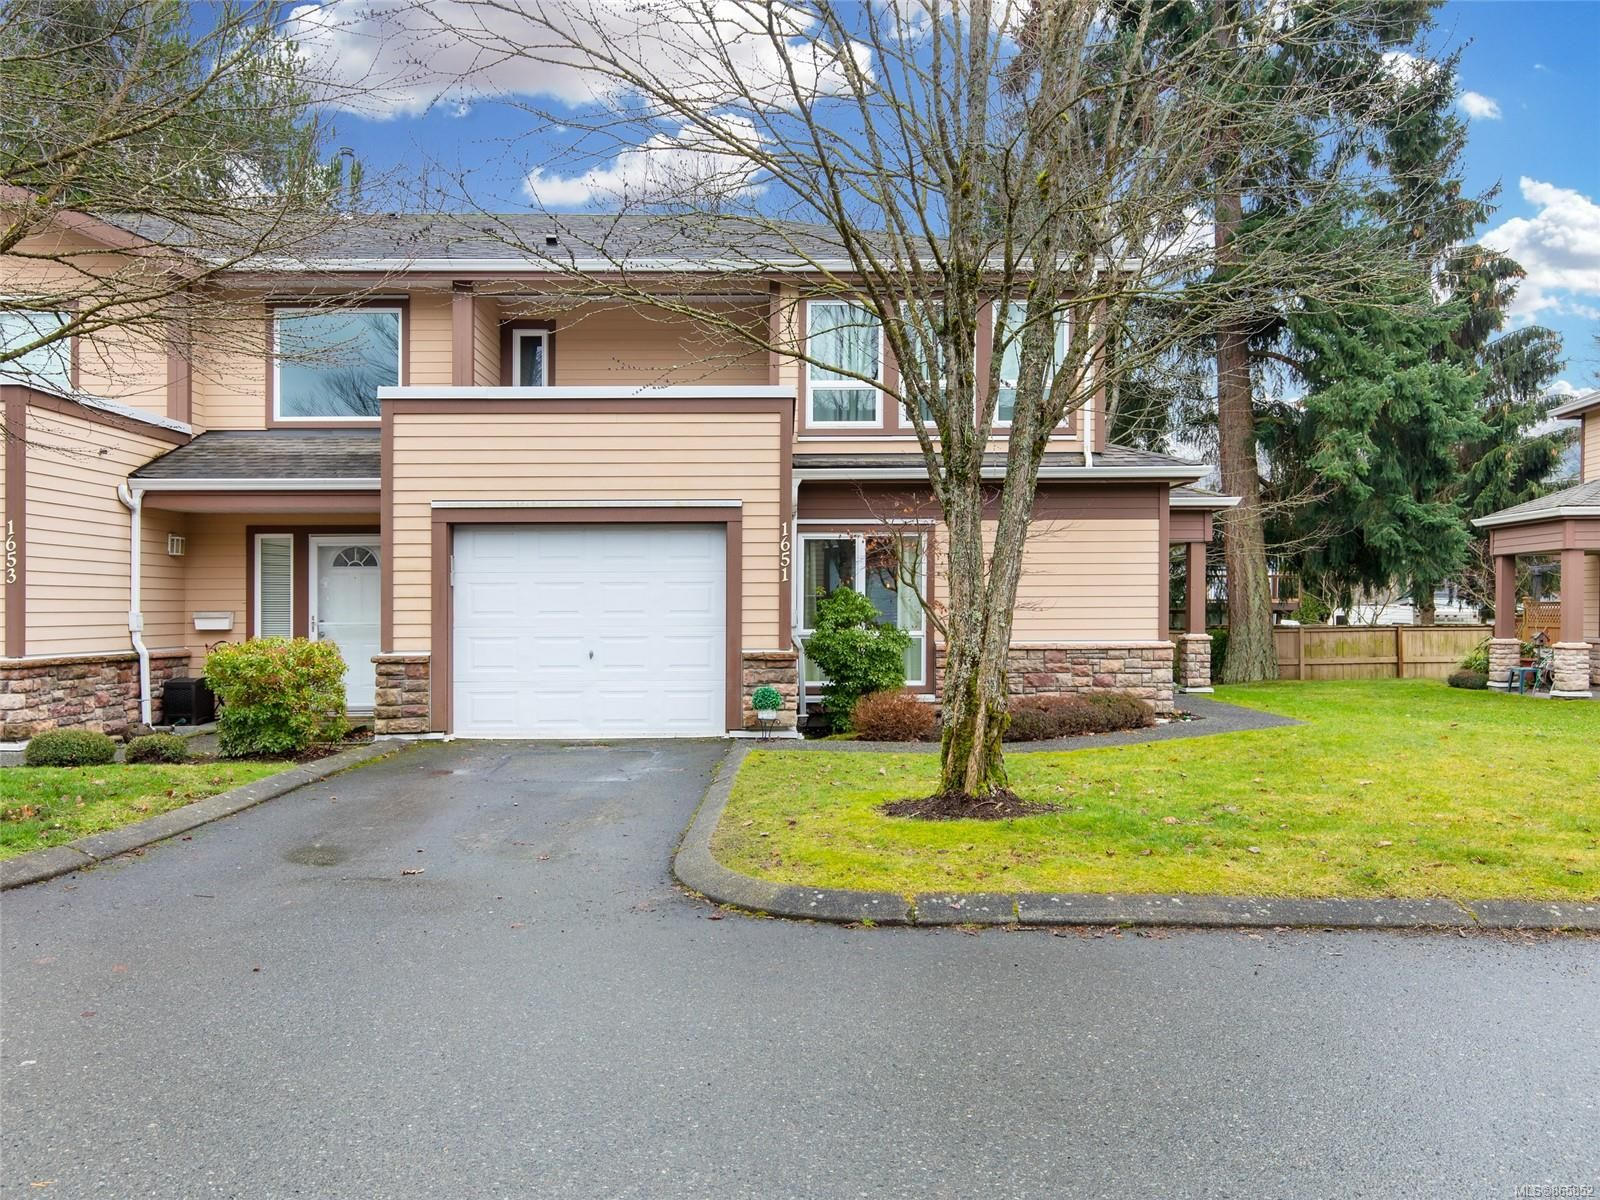 Main Photo: 1651 Creekside Dr in : Na Central Nanaimo Row/Townhouse for sale (Nanaimo)  : MLS®# 865852